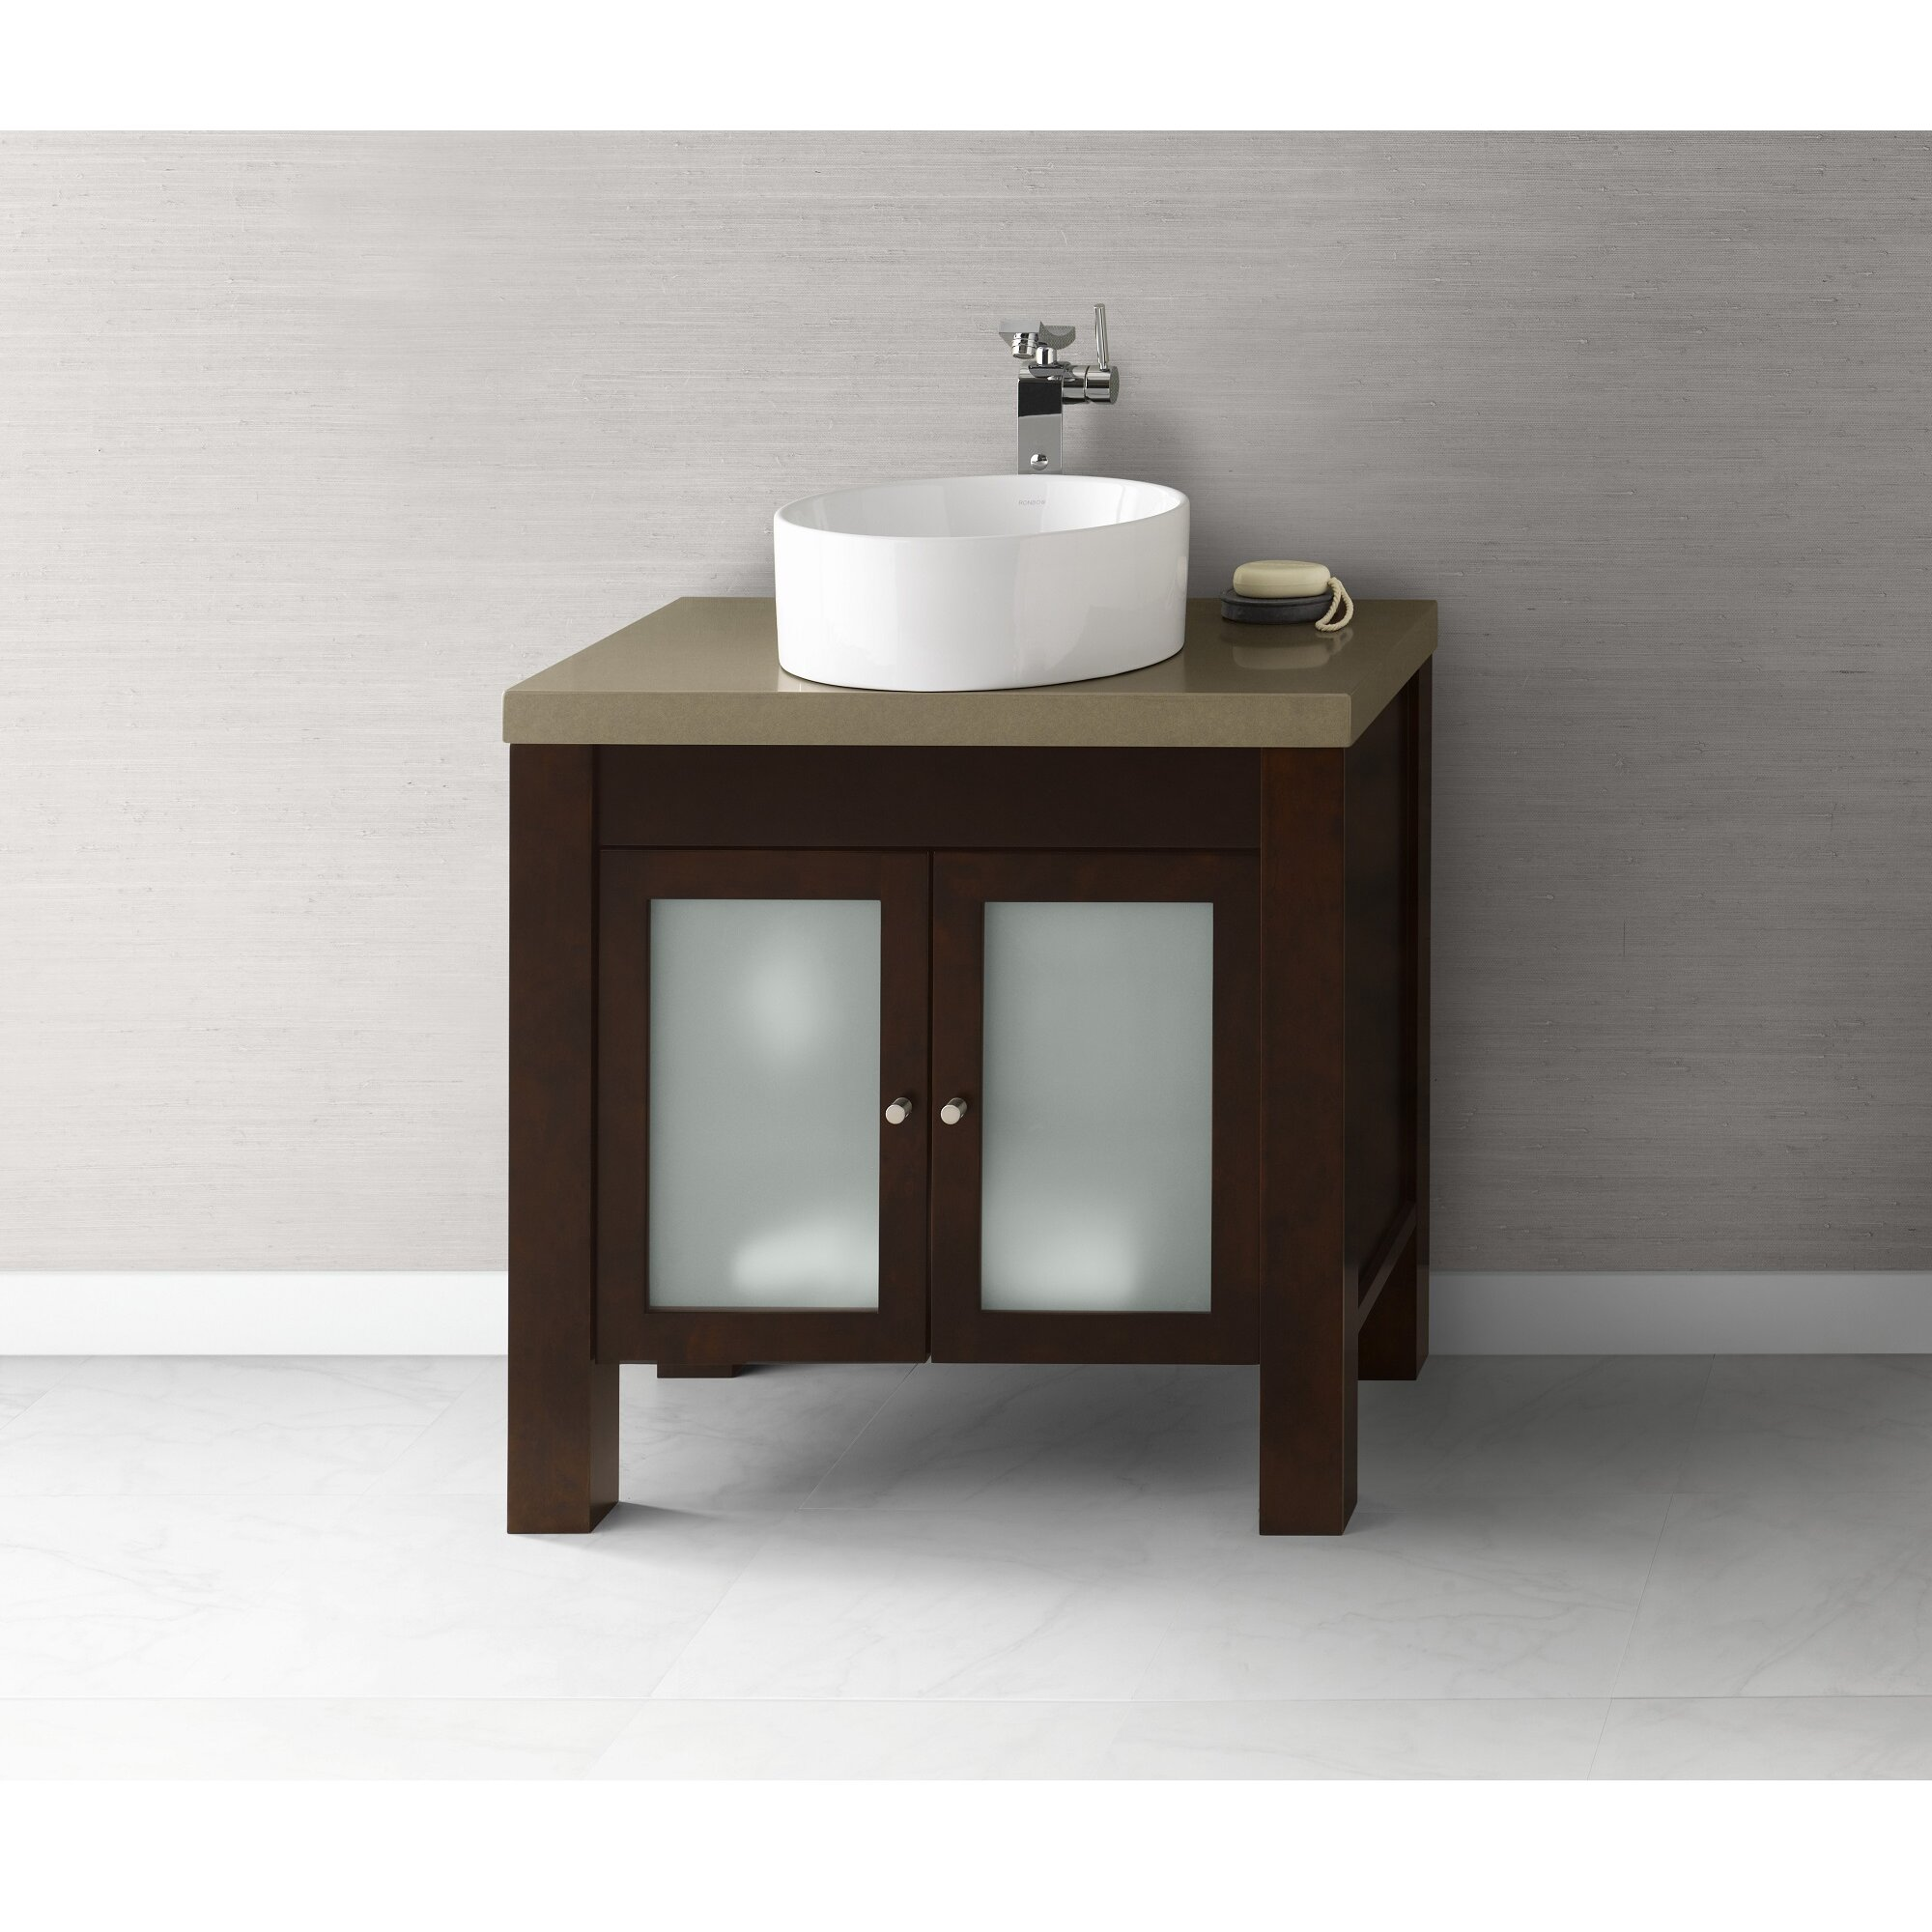 ronbow square tapered ceramic dropin bathroom sink in white  - ronbow ceramic circular vessel bathroom sink reviews wayfair  ronbowbathroom sinks